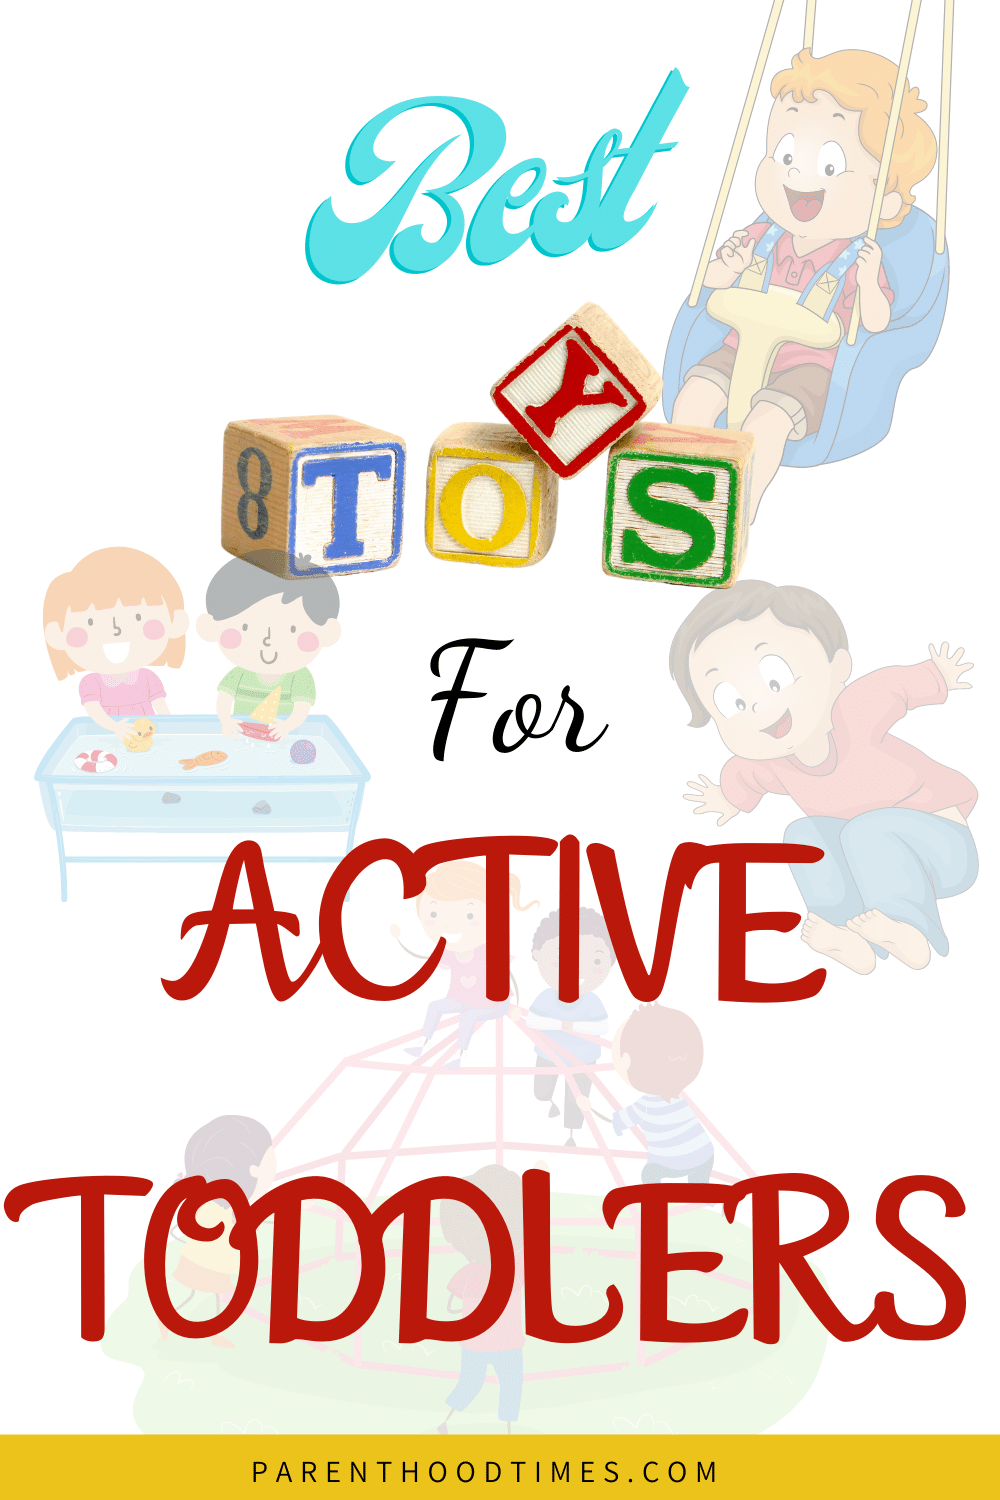 Check out the best indoor toys to help active kids get their energy out. #toys#toysforkids #activitytoys#giftsforkids #indooractivetoys